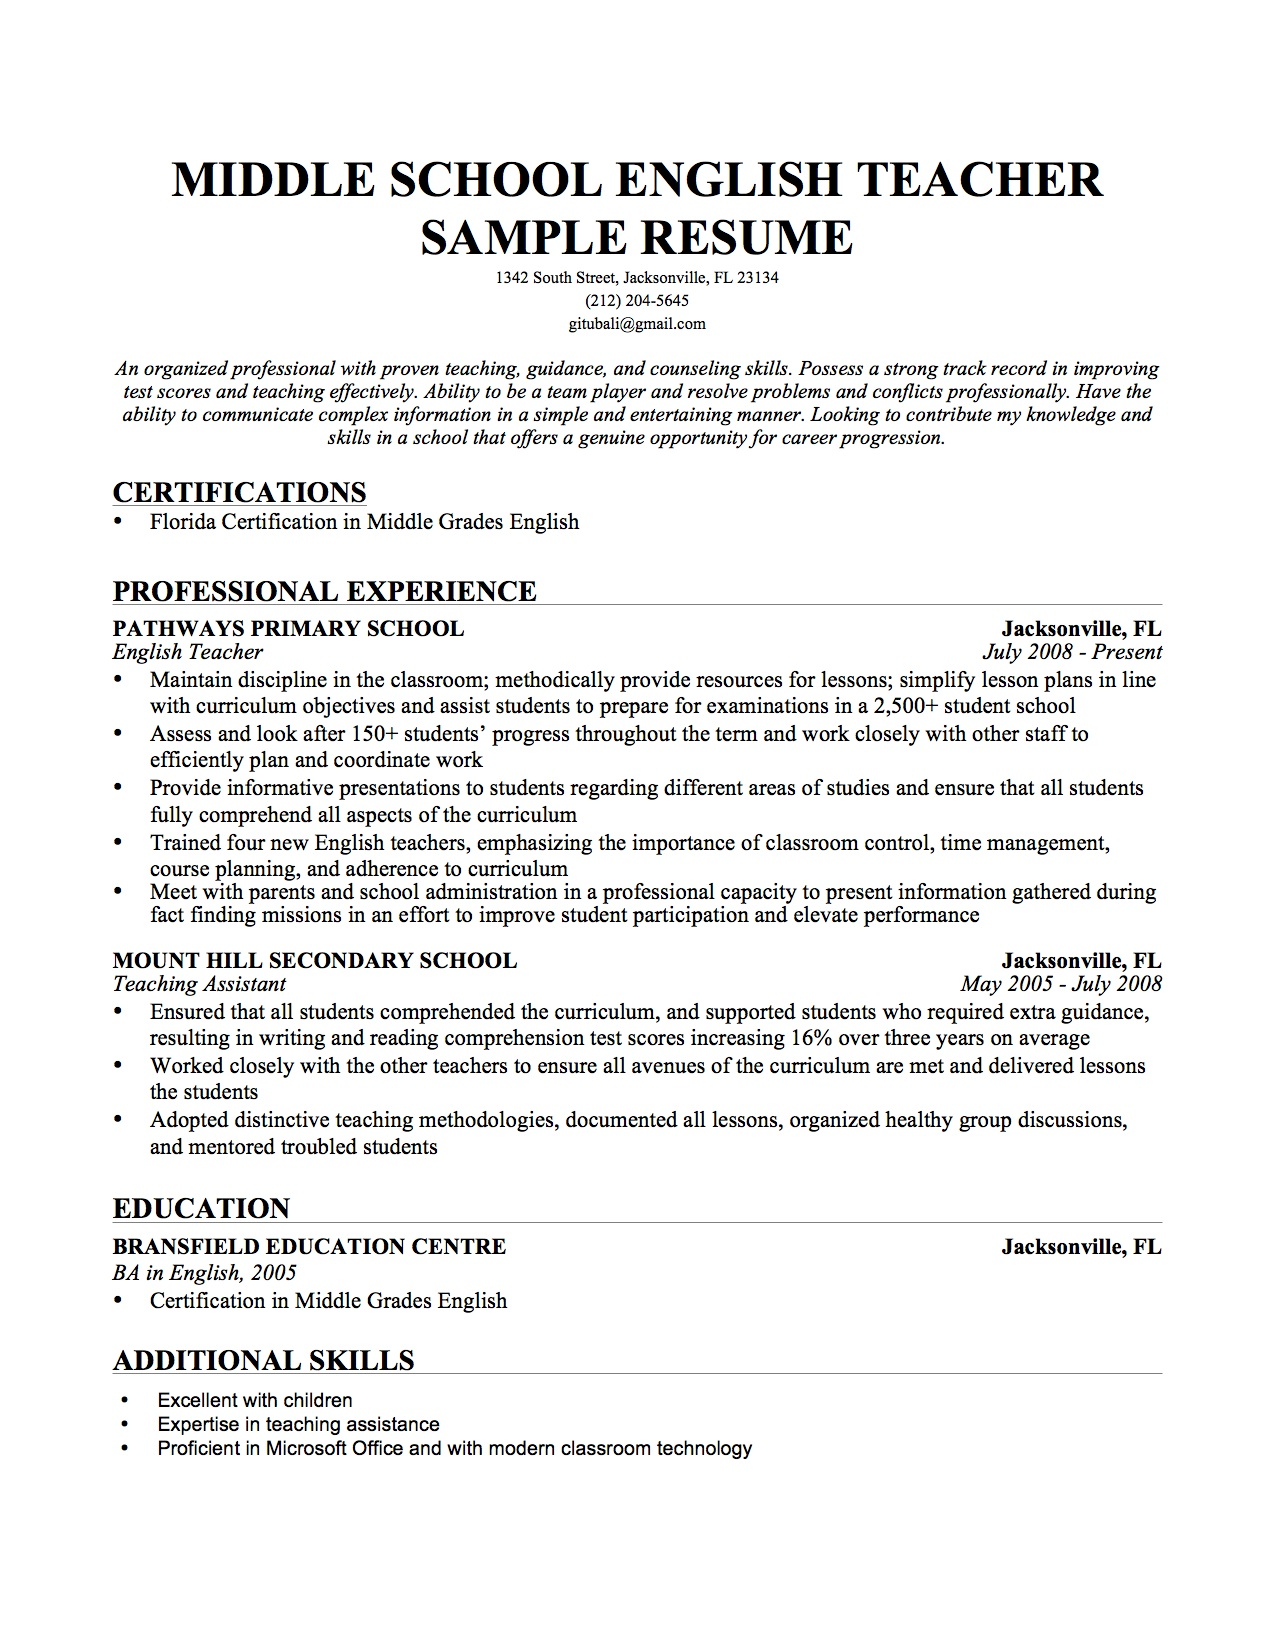 resume for teacher candidate sample customer service resume resume for teacher candidate teacher resume samples o resumebaking english teacher resume sample resume genius